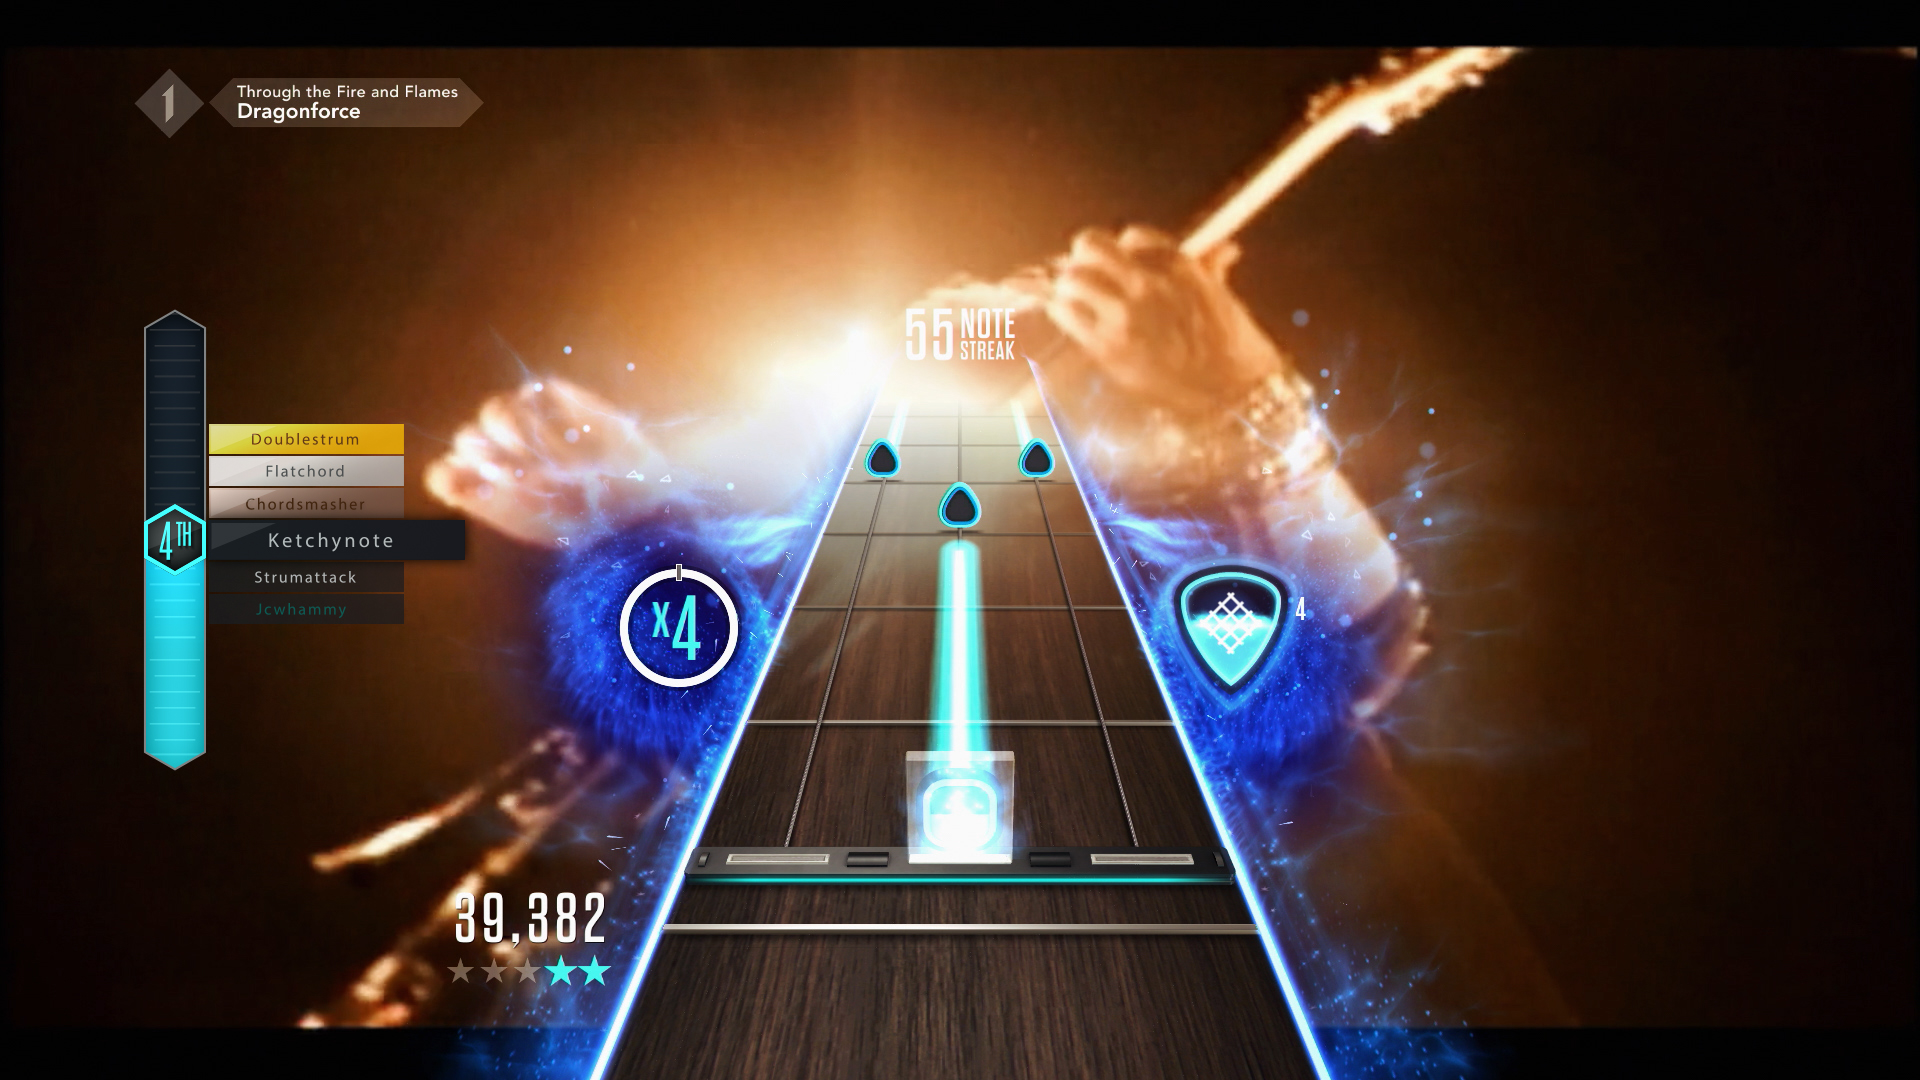 Guitar Hero Live Ghtv Shred A Thon Welcomes Dragonforces Through